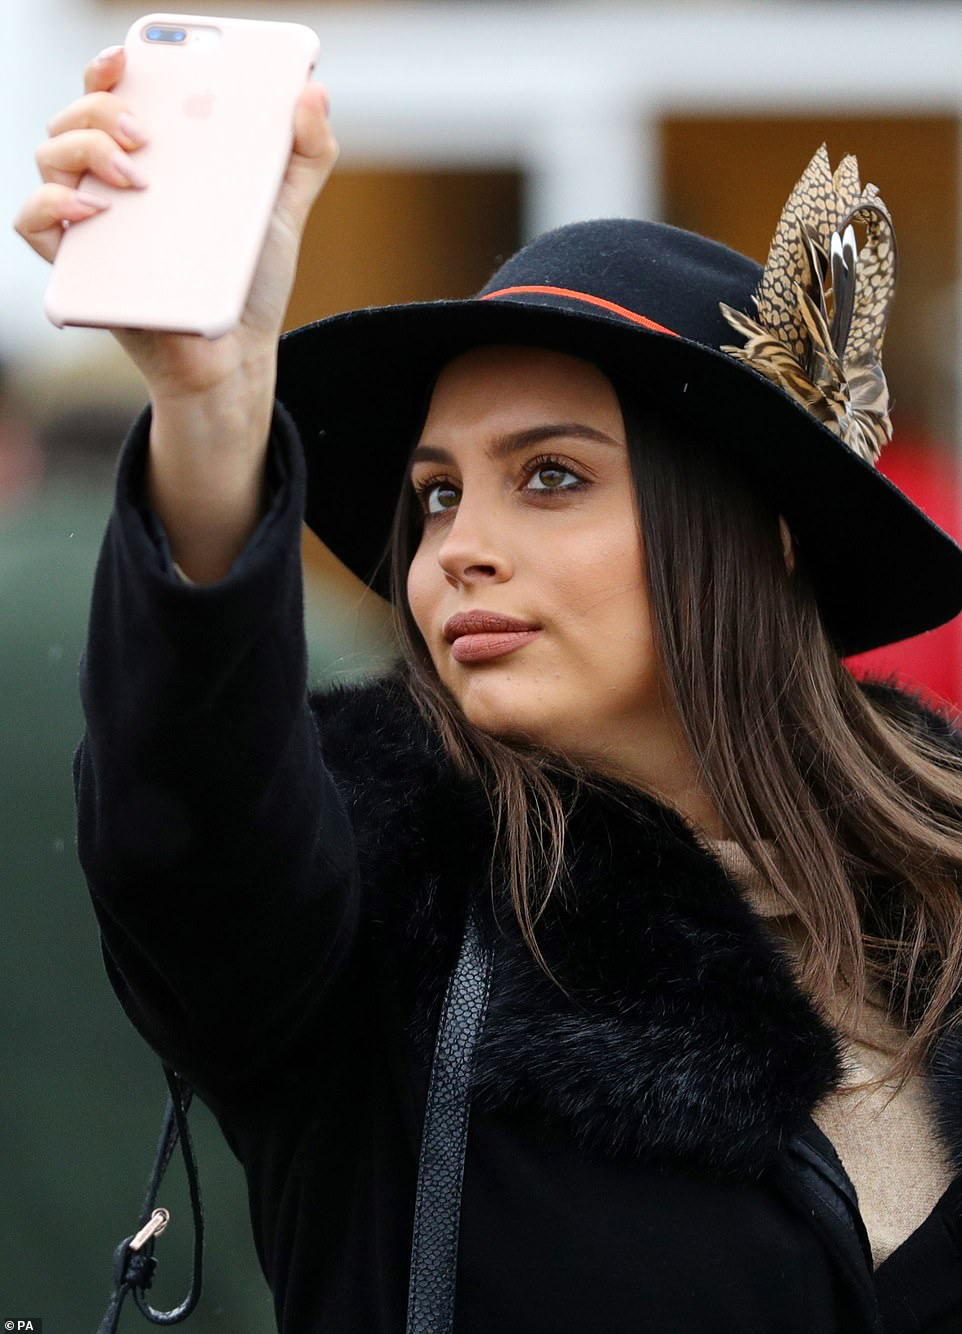 Selfie queen: A racegoer pauses to get a snap of her best side as she marches into the paddock for the final day of the meet